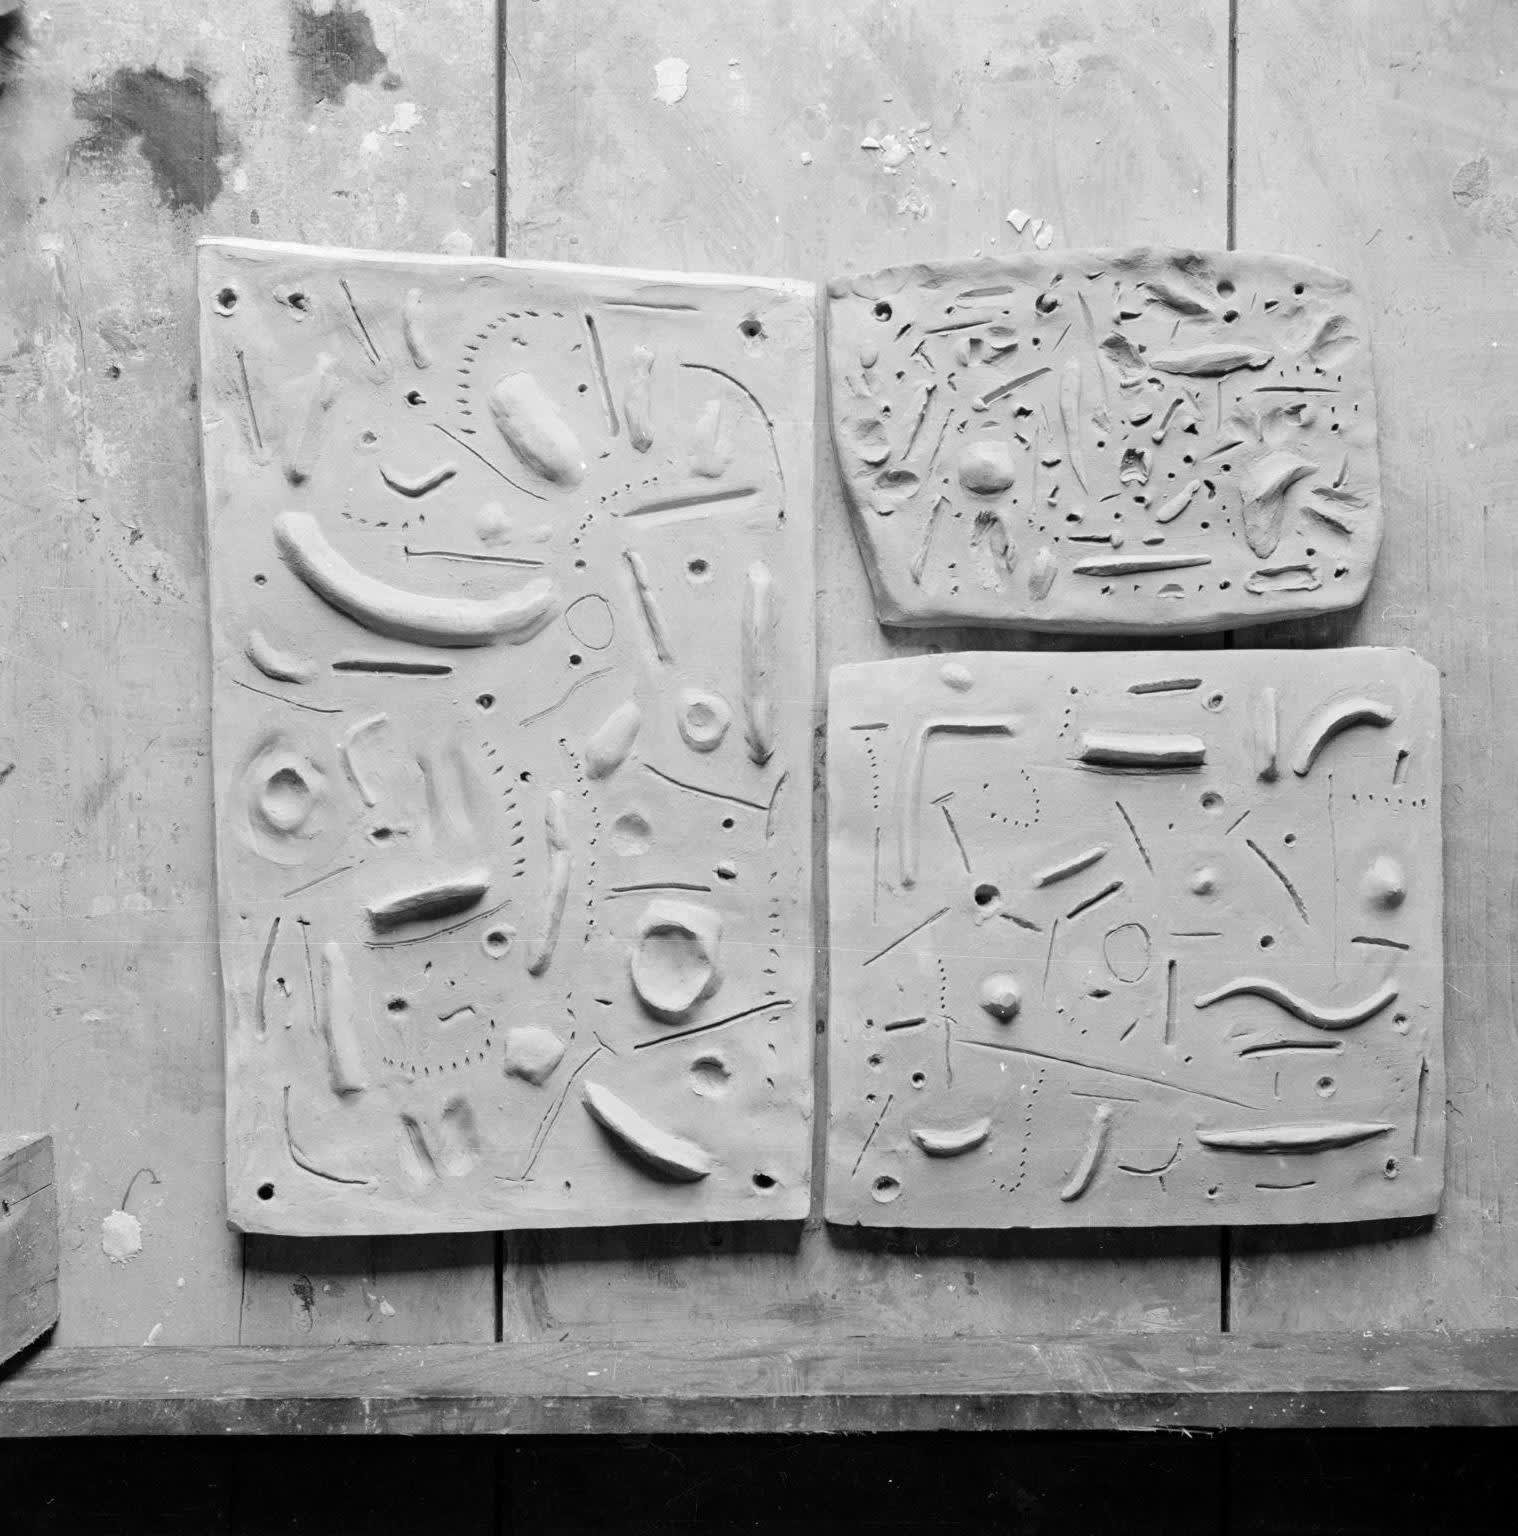 Contemporary photograph of other Reliefs by Eduardo Paolozzi c.1949-1956, taken by Nigel Henderson. The Eduardo Paolozzi Foundation. The Estate of Nigel Henderson. Tate Archive